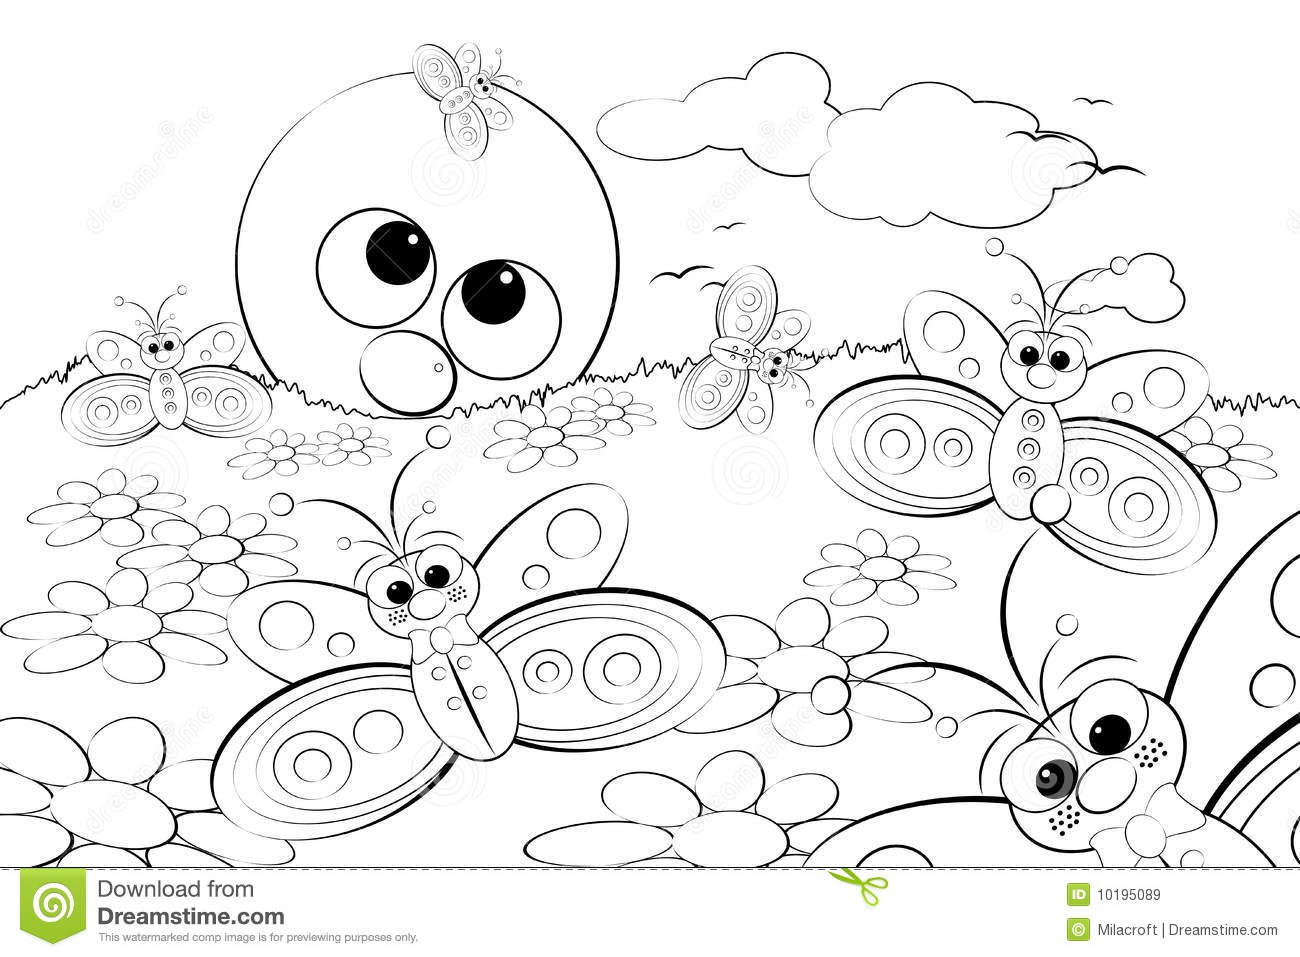 Coloring Page Landscape - Coloring page landscape with sun and butterflies